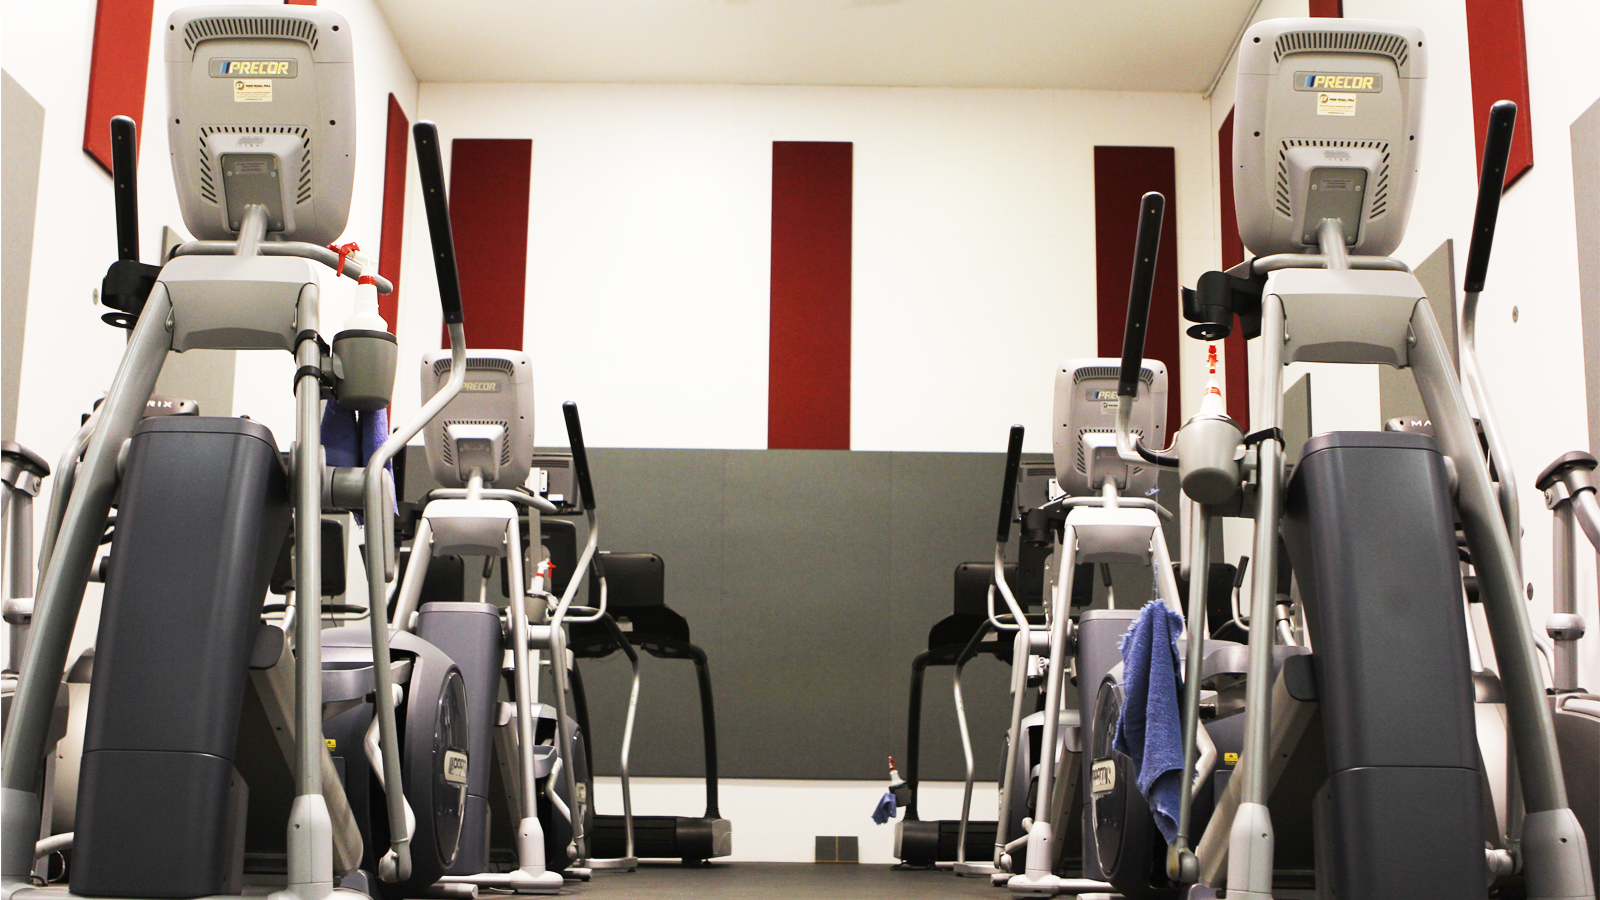 Elliptical machines in Cardio Zone